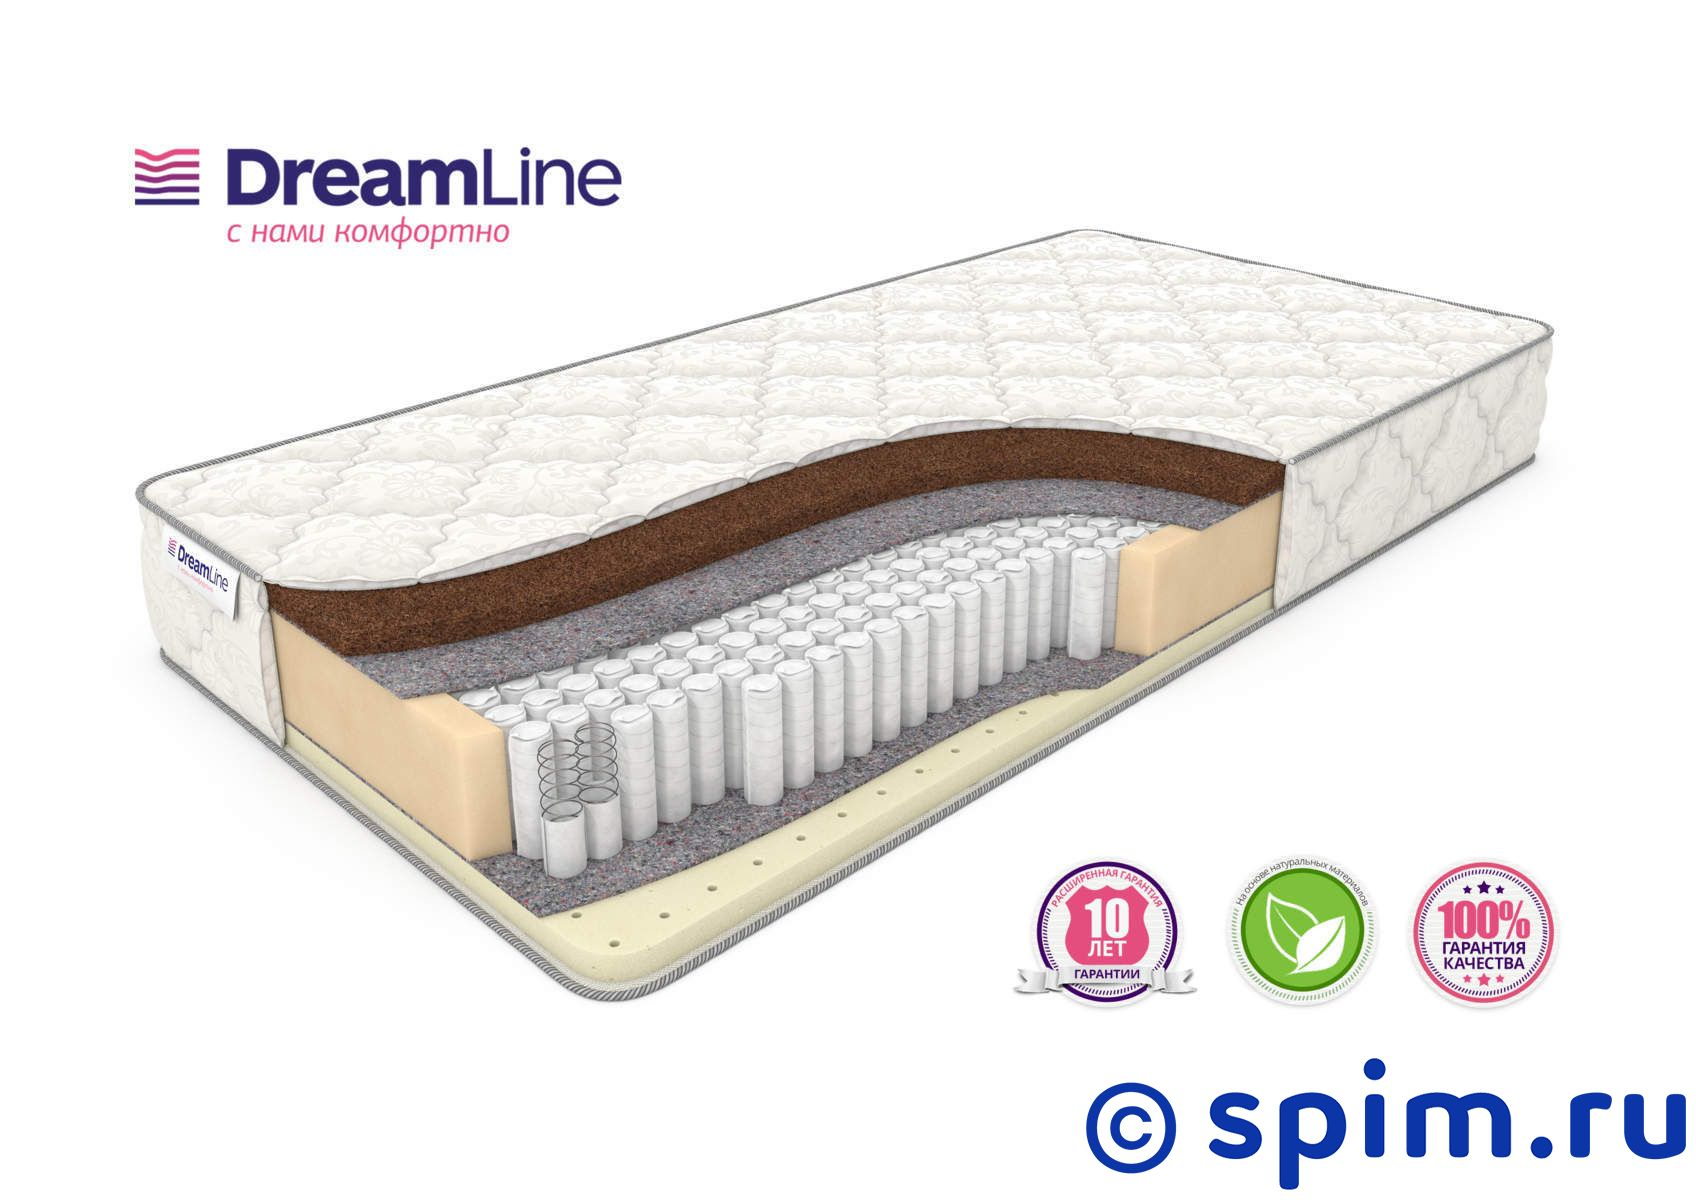 Матрас DreamLine SleepDream S1000 150х195 см матрас dreamline sleepdream medium tfk 140х200 см